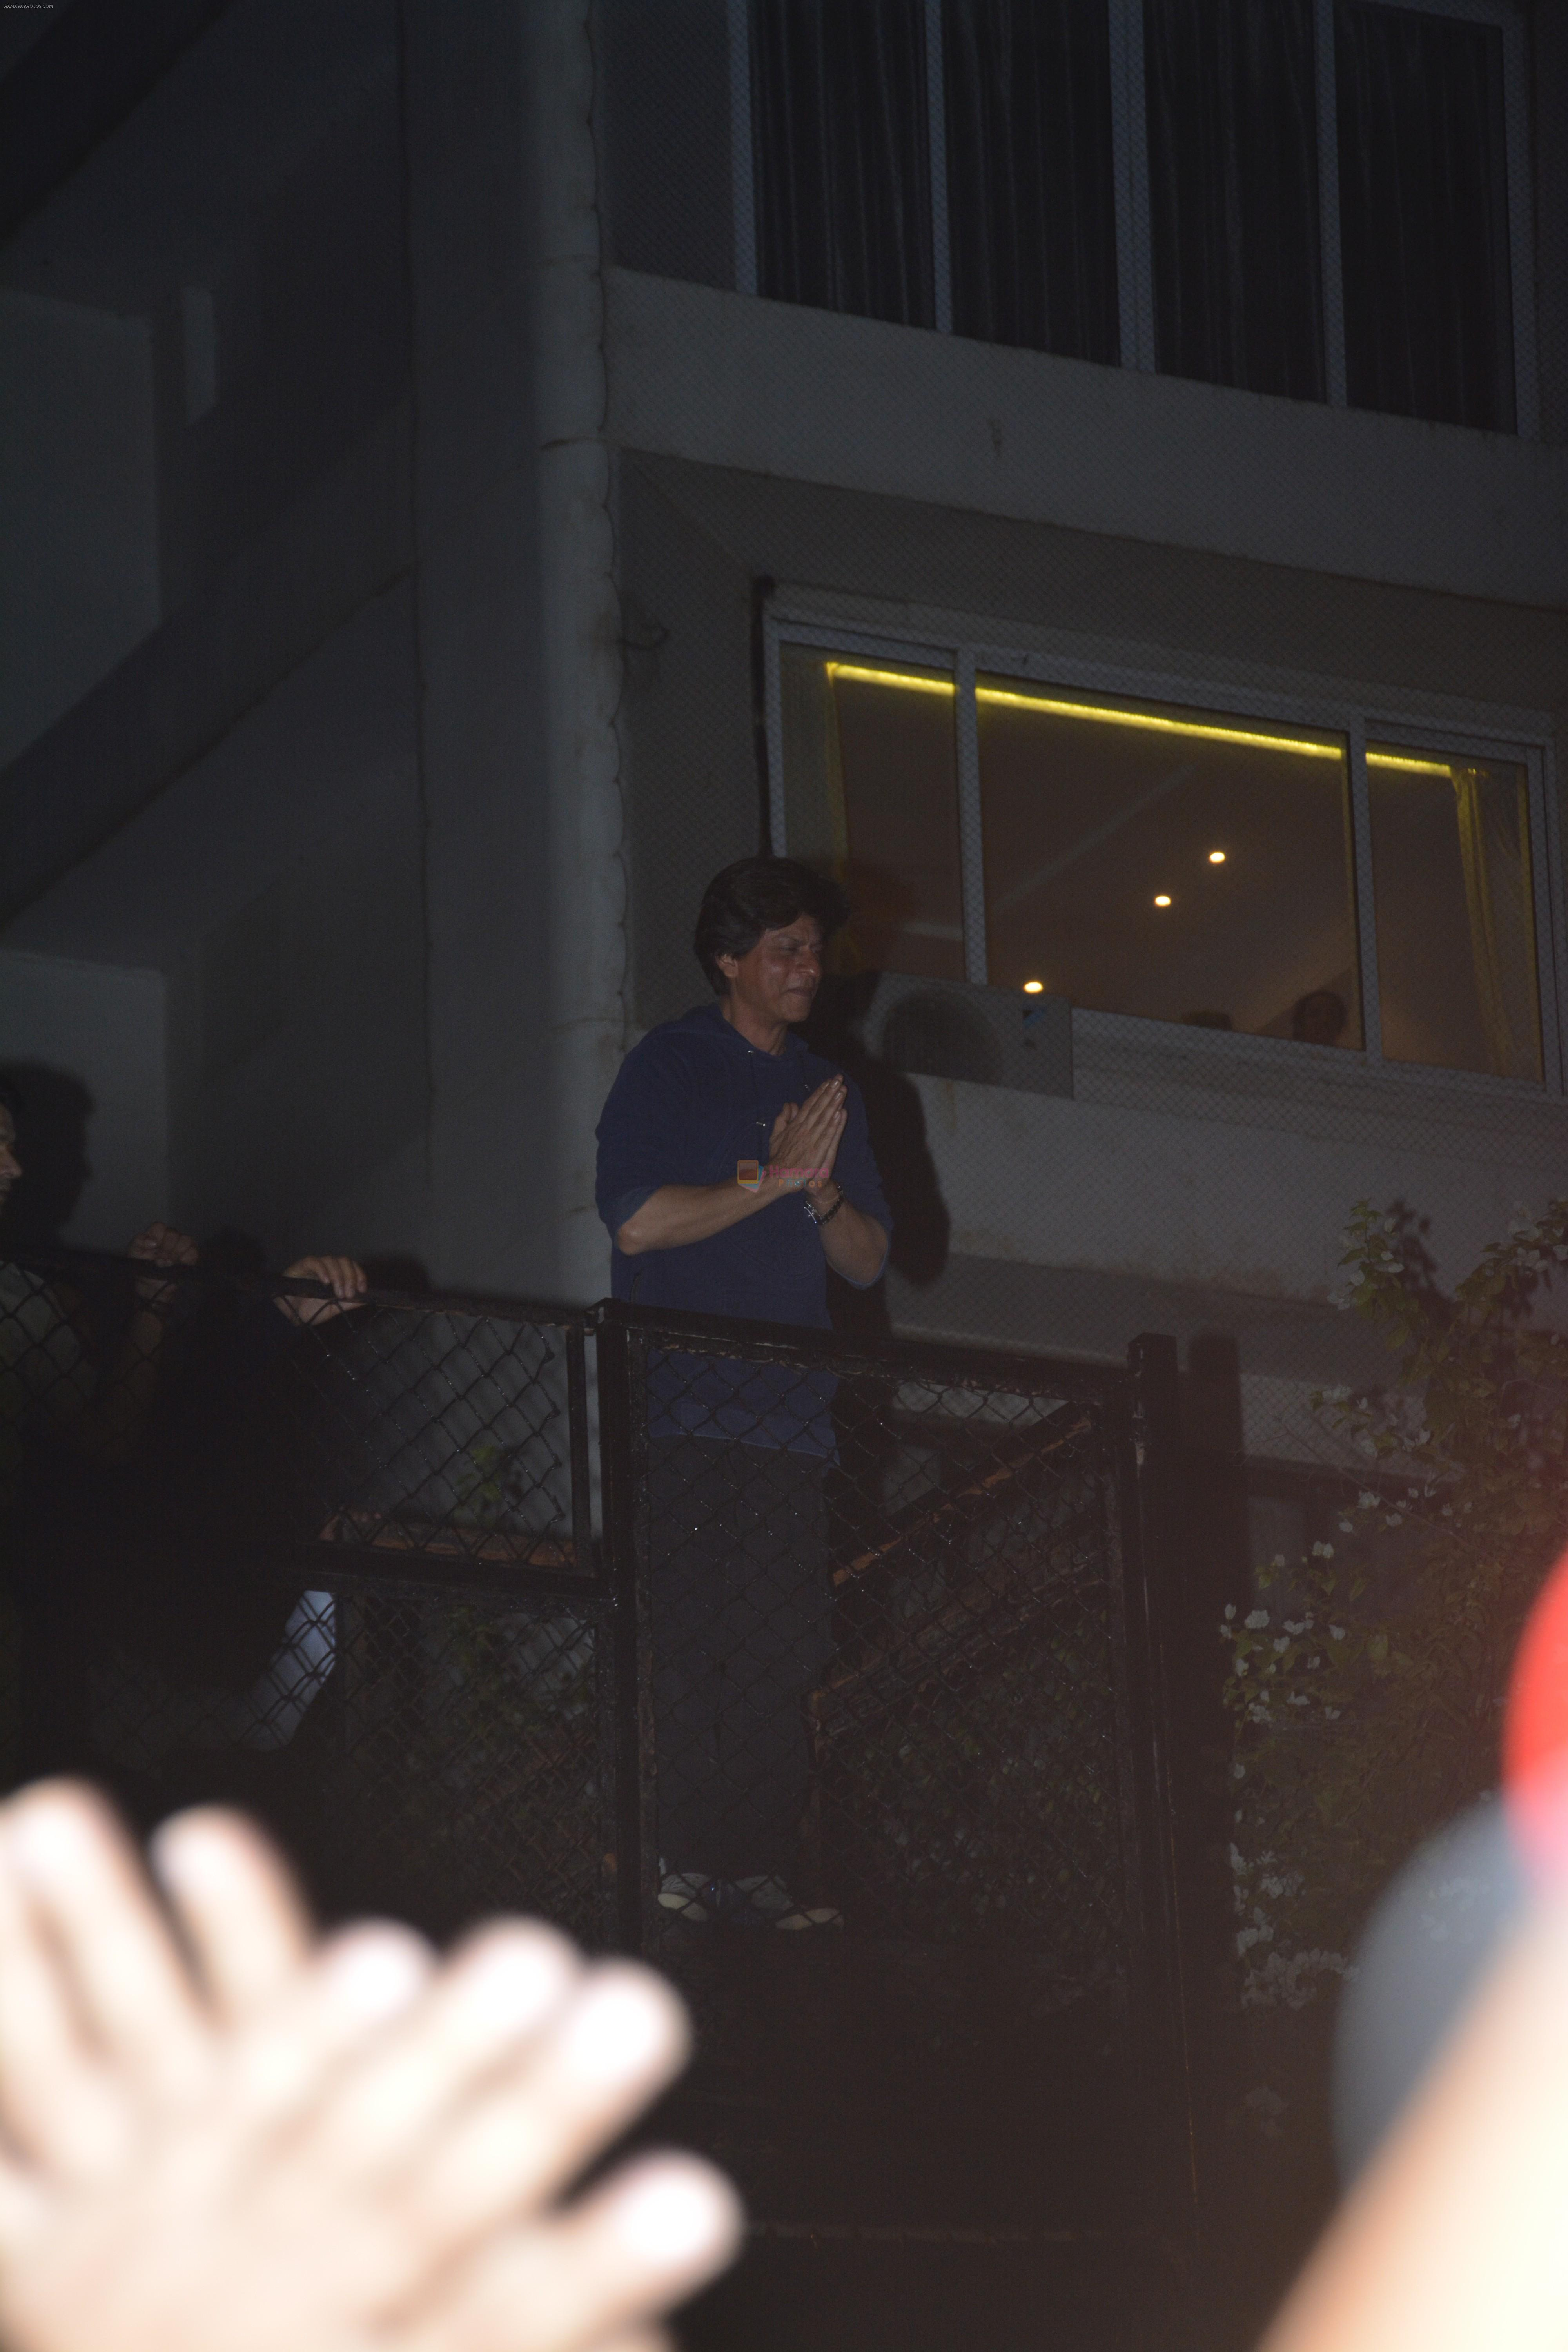 Shahrukh Khan waves to his fans on his birthday at his bandra residence on 1st Nov 2018